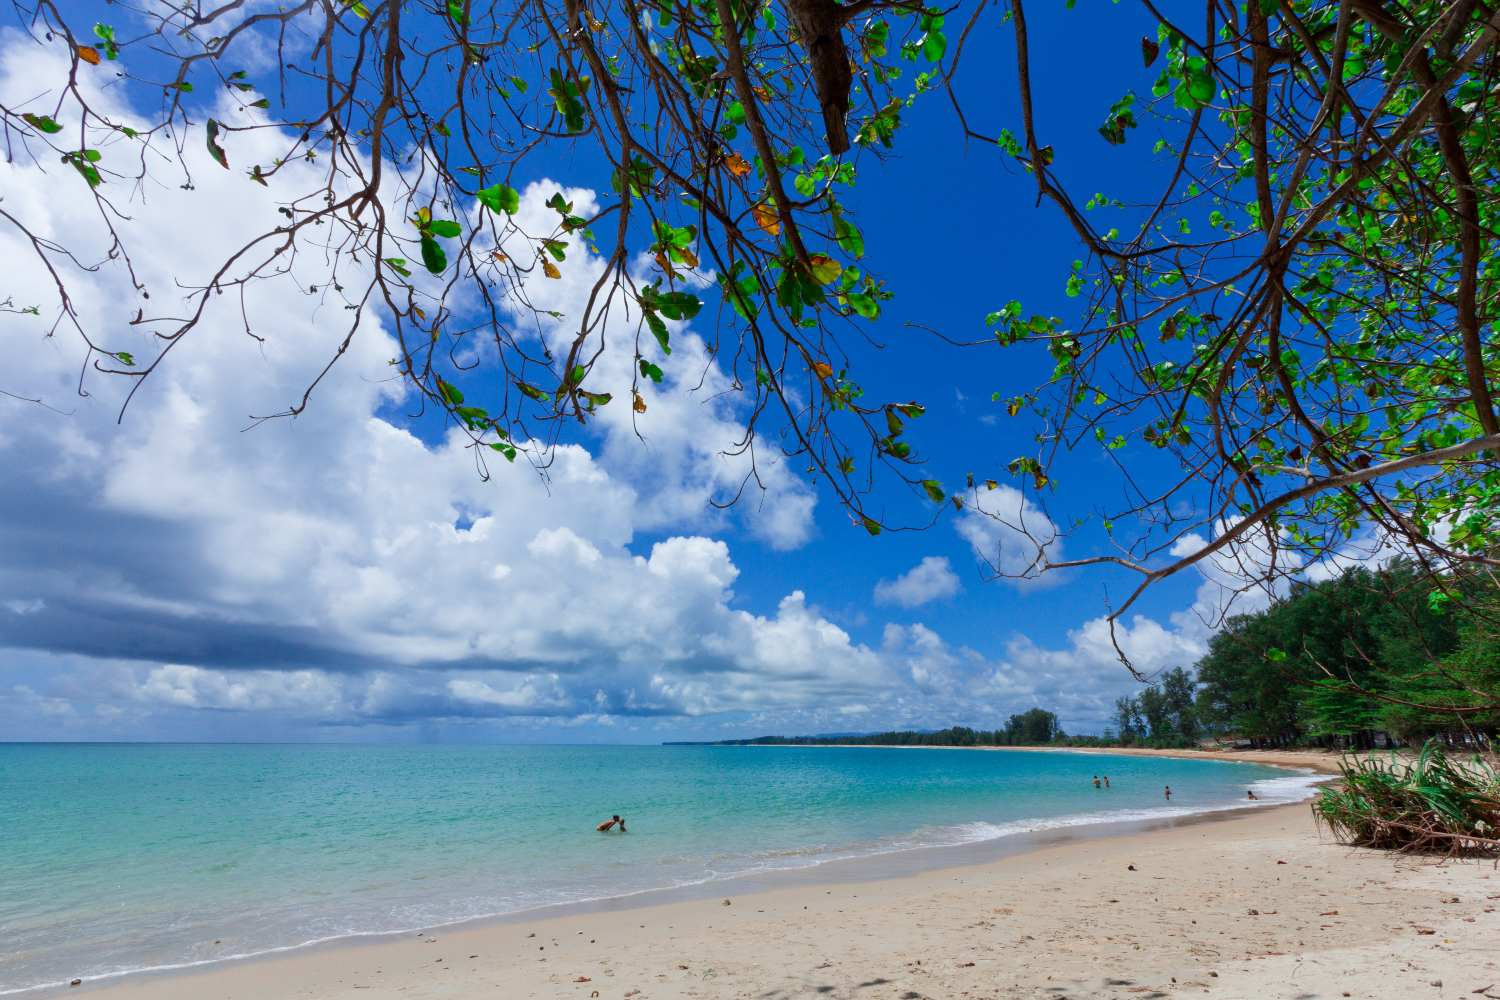 There is good snorkelling in the sea opposite Nai Yang Beach in Phuket's Sirinat National Park.